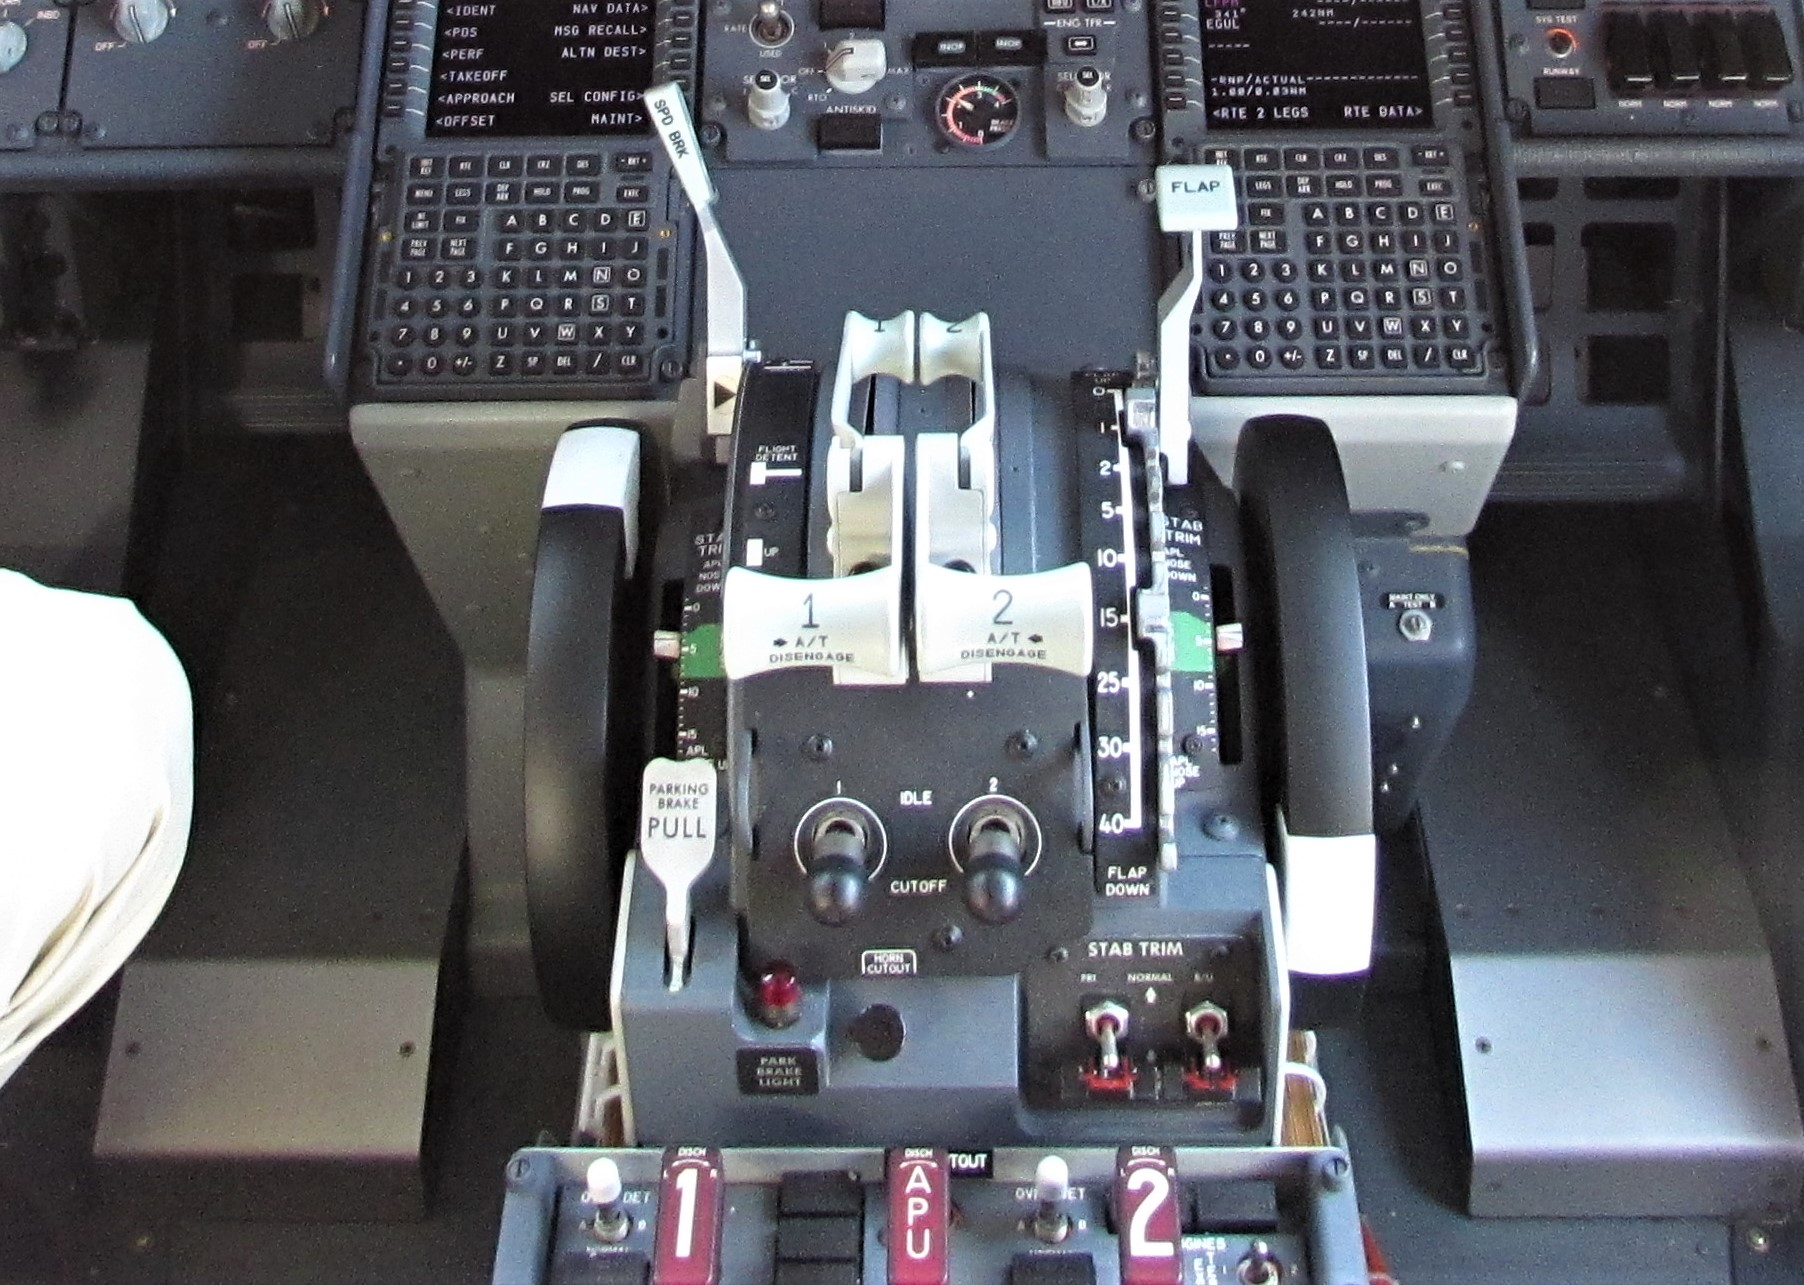 Boeing 737 Max 8 stabiliser trim cut-out